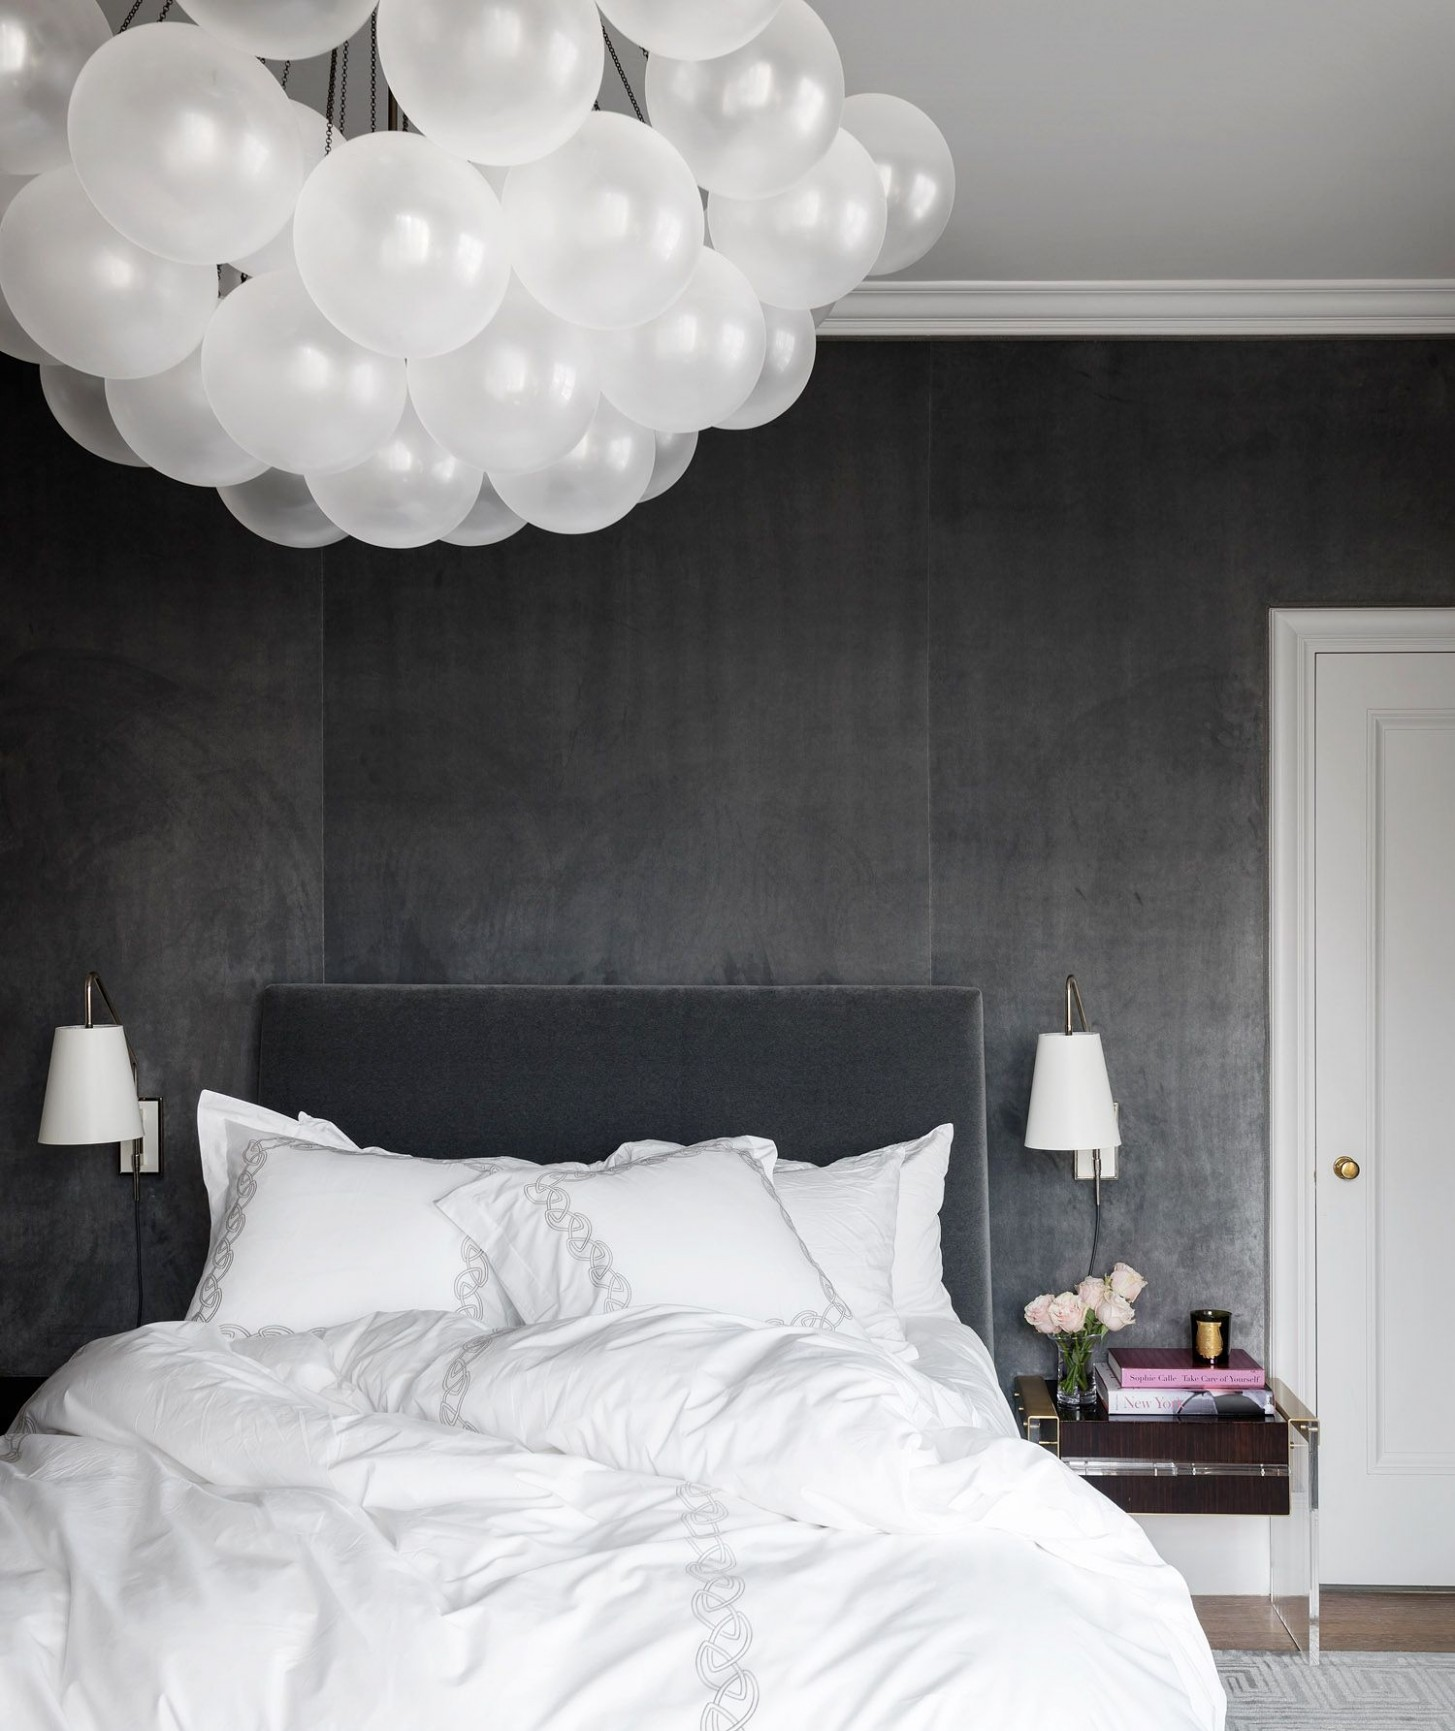 9 Romantic Bedroom Ideas - Sexy Bedroom Style Tips and Decor - Bedroom Ideas For Couples